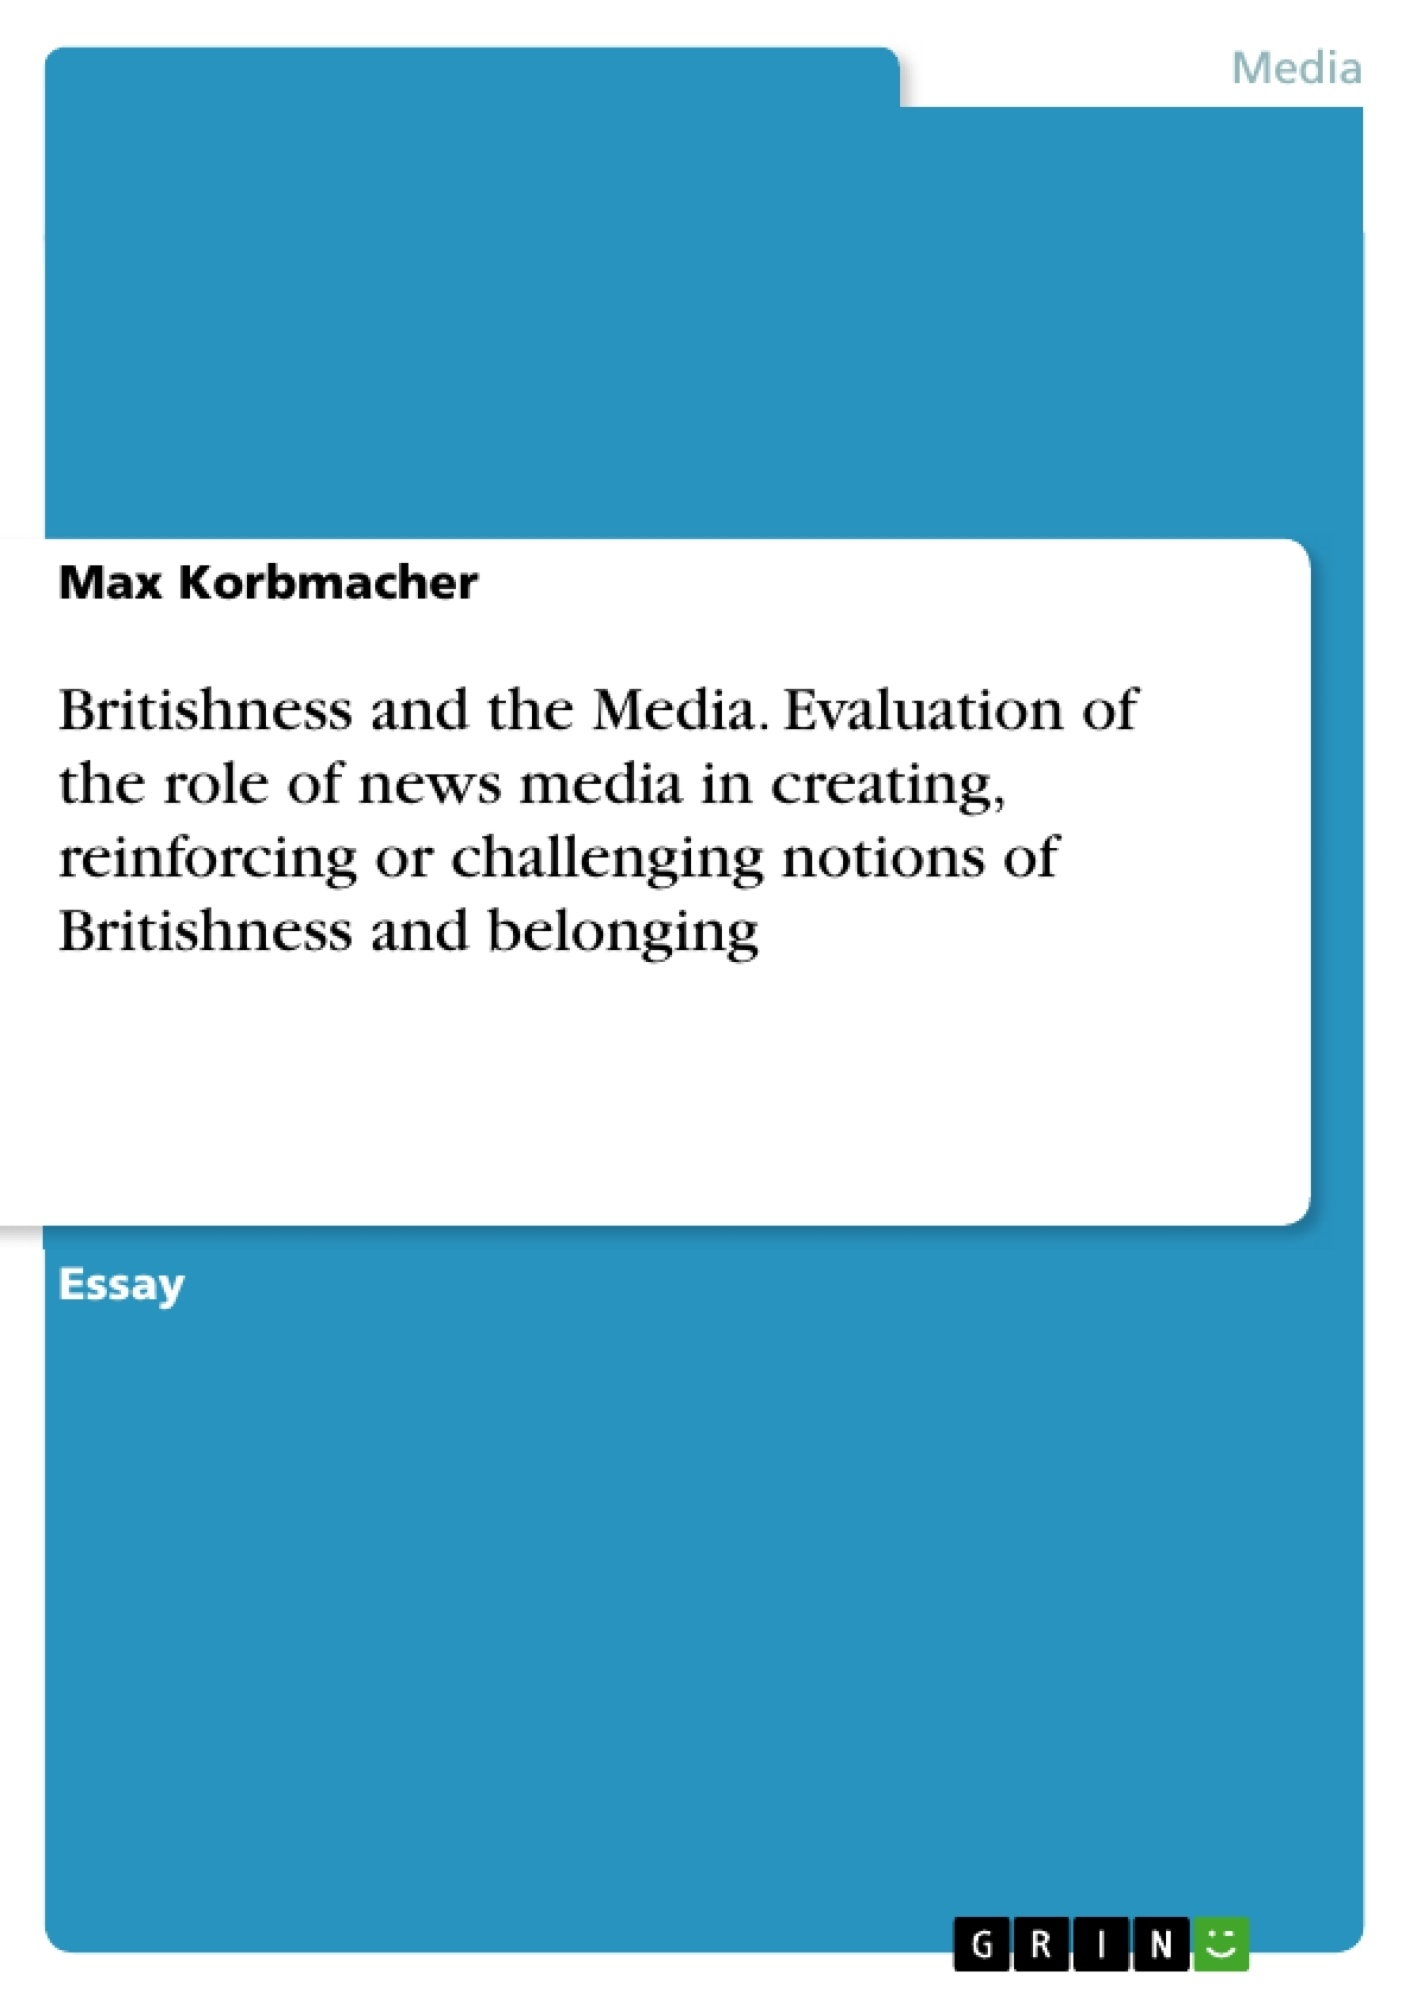 Title: Britishness and the Media. Evaluation of the role of news media in creating, reinforcing or challenging notions of Britishness and belonging